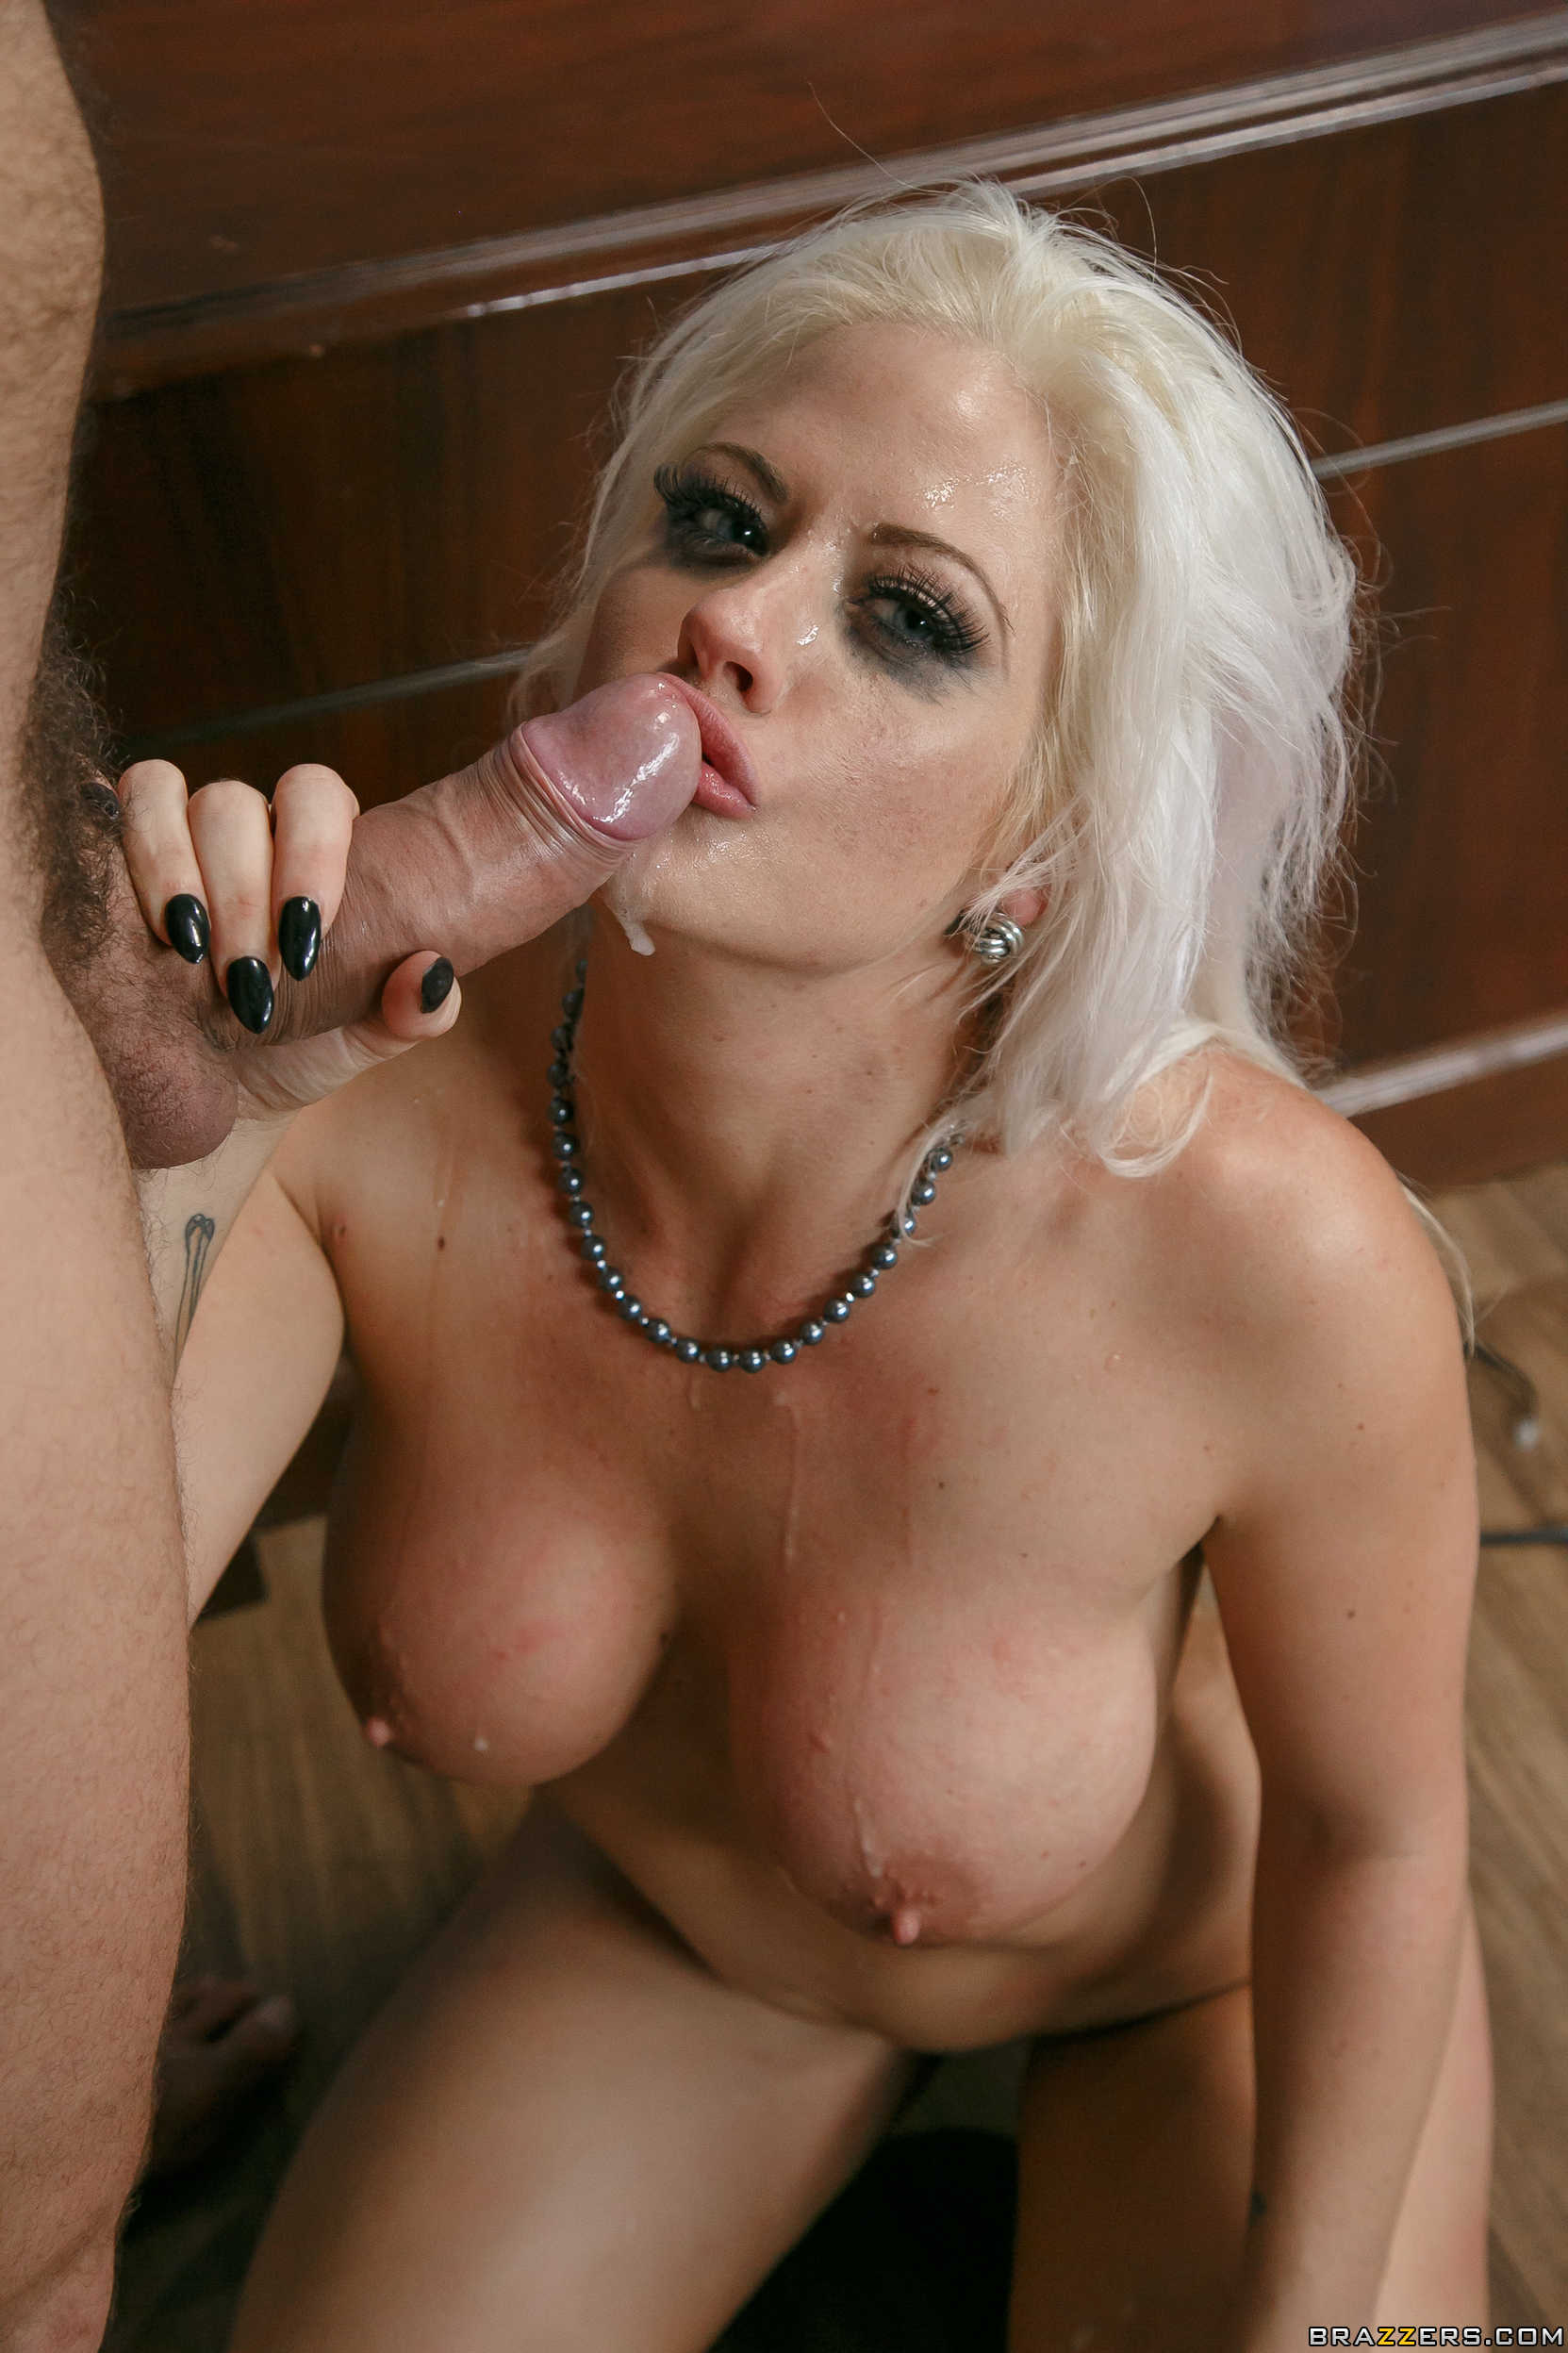 Blonde milf phoenix marie is nailing a guy she just met 2